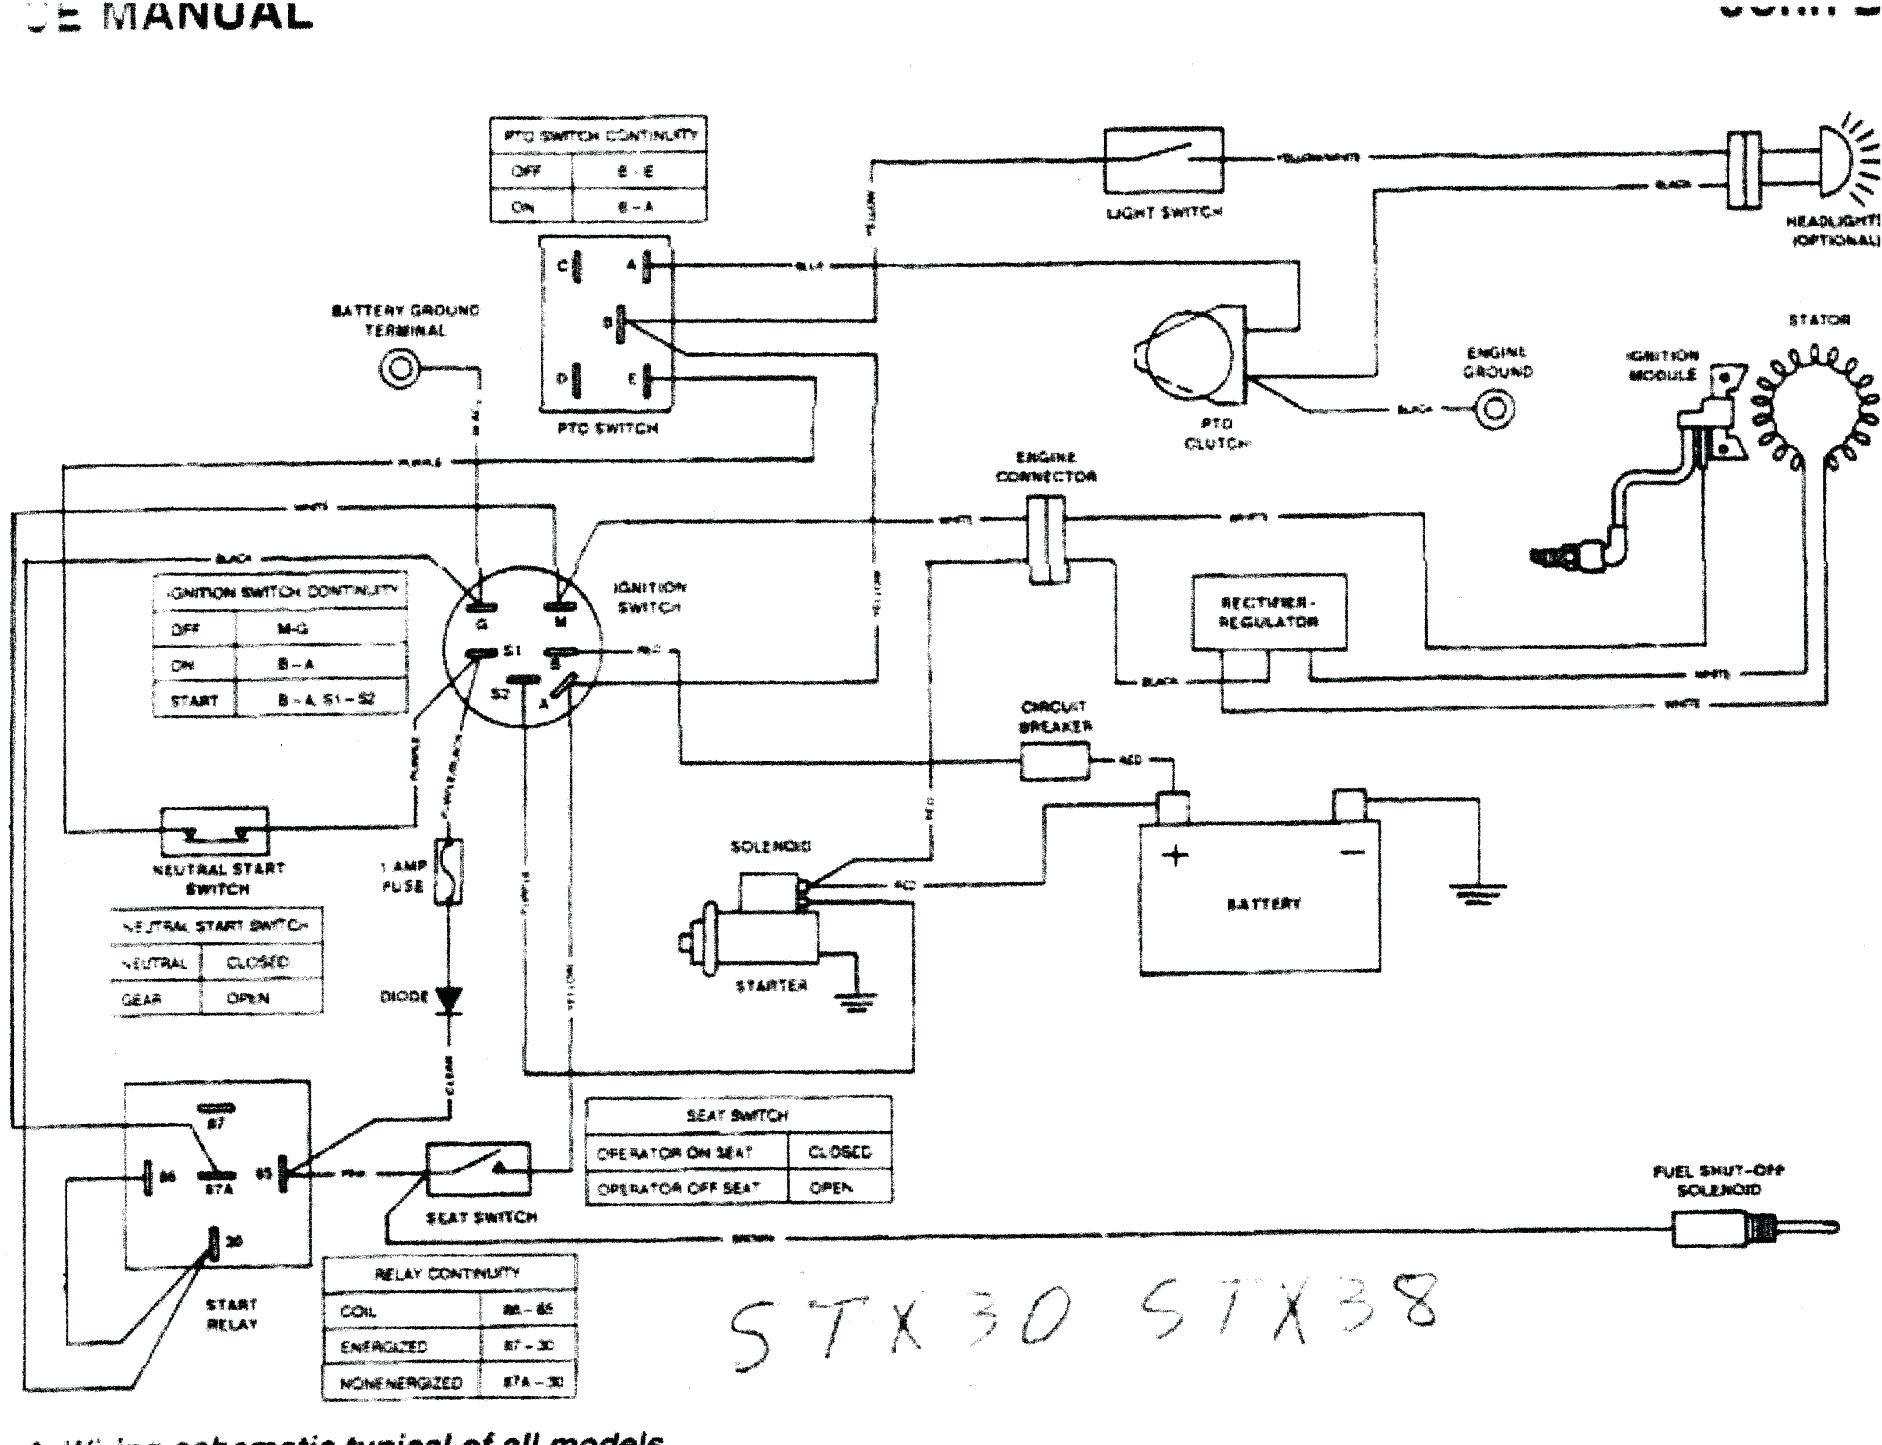 Wiring Diagram For 245 John Deere Tractor Free Download - Wiring Diagram  Direct versed-stereotype - versed-stereotype.siciliabeb.it | John Deere Wiring Diagrams |  | versed-stereotype.siciliabeb.it